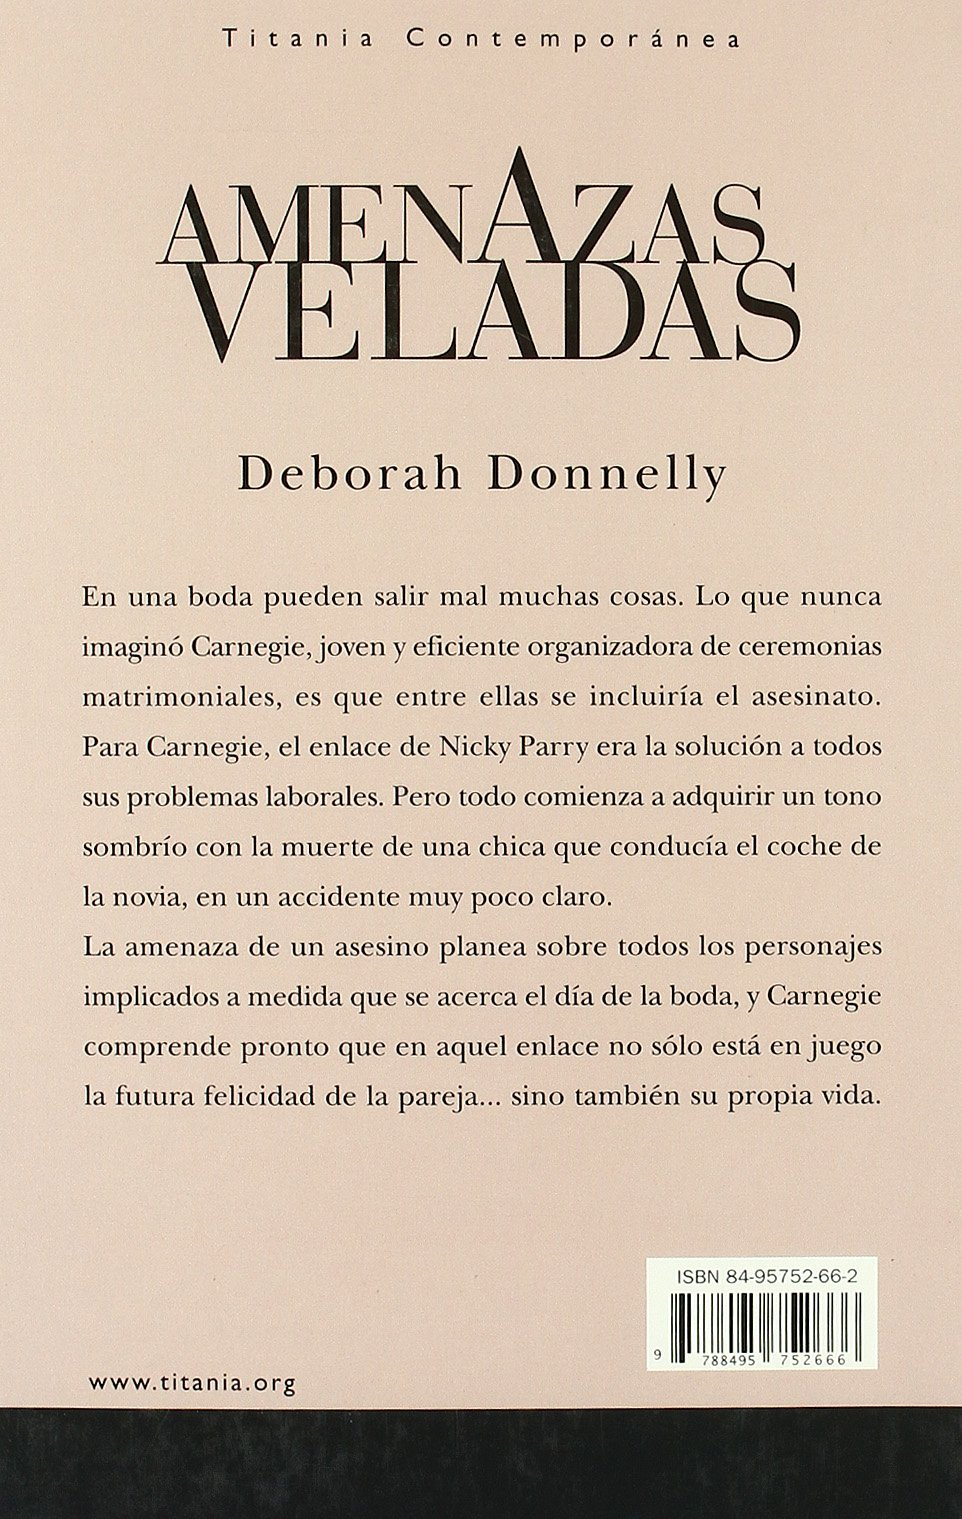 Amazon.com: Amenazas Veladas (English and Spanish Edition) (9788495752666): Deborah Donnelly, Cristina Pages: Books